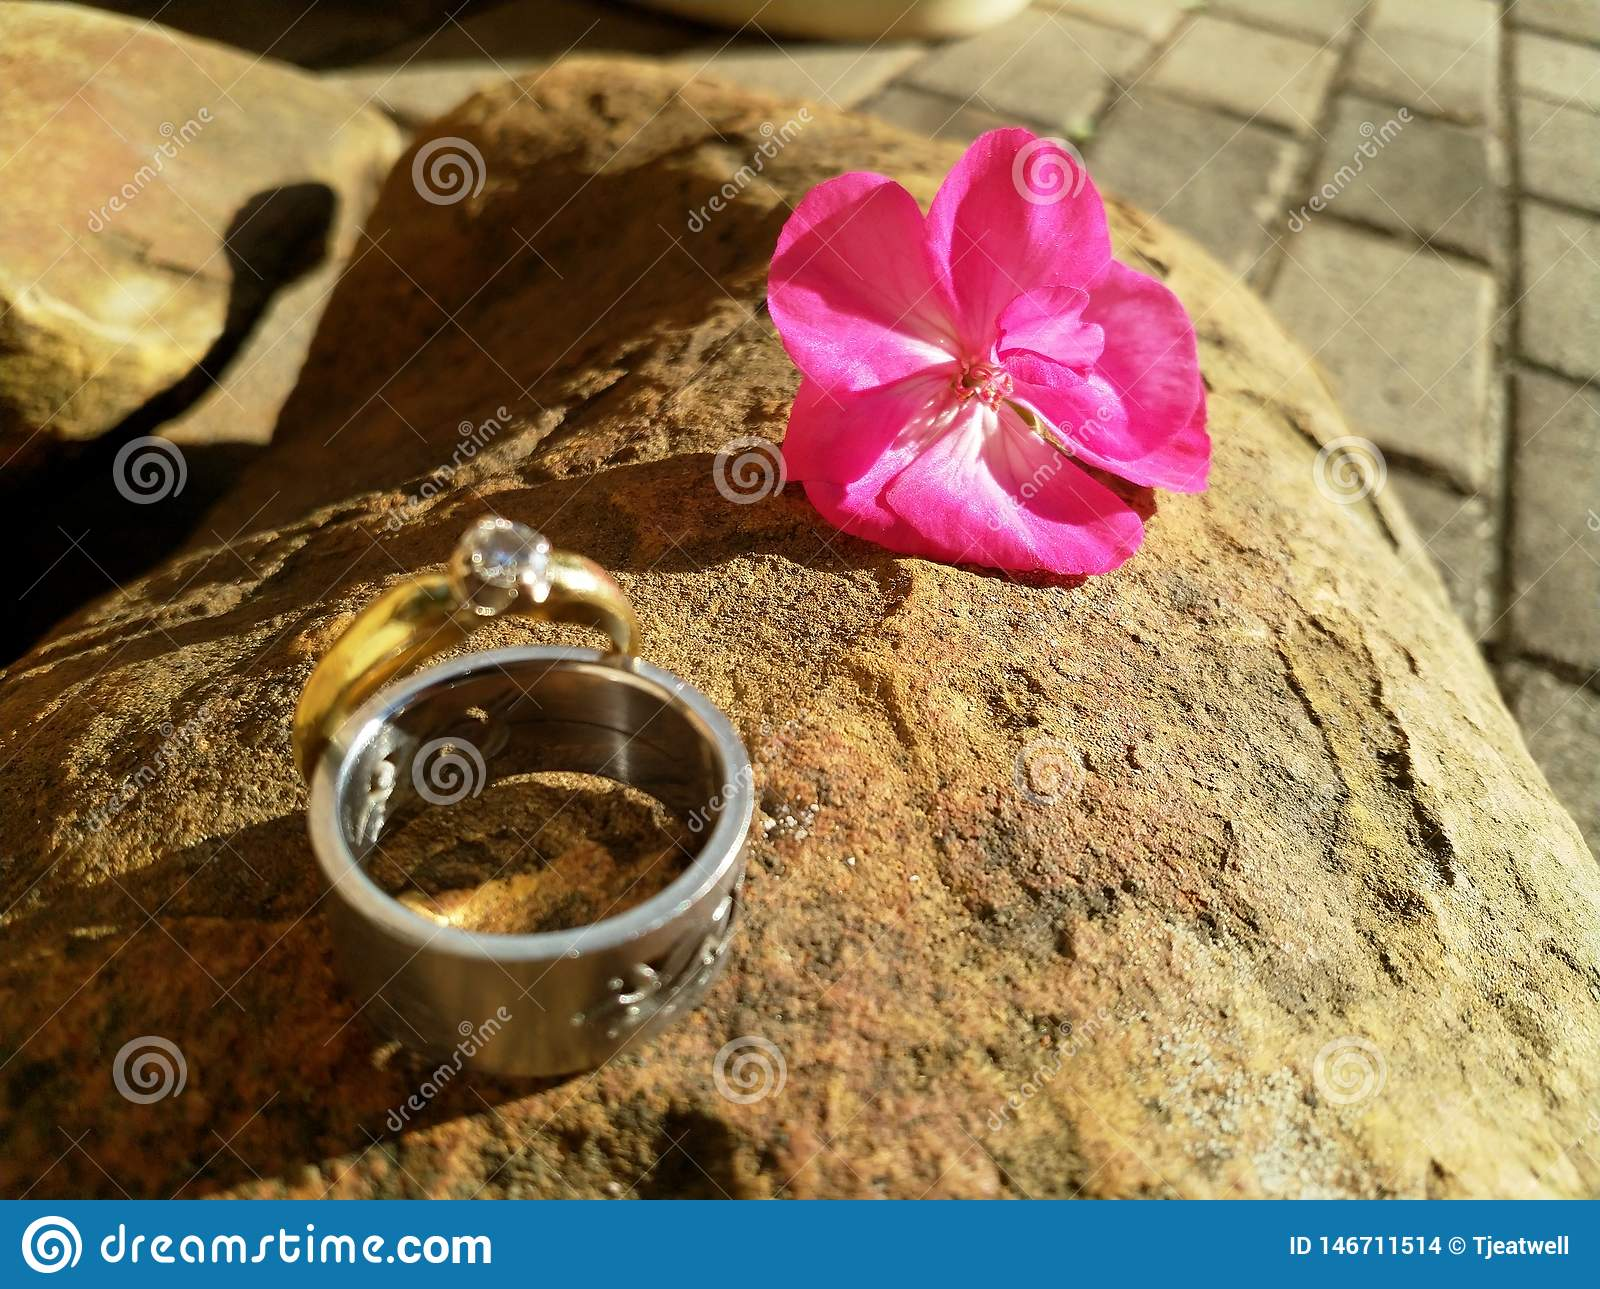 Wedding Rings on a Rock Surface